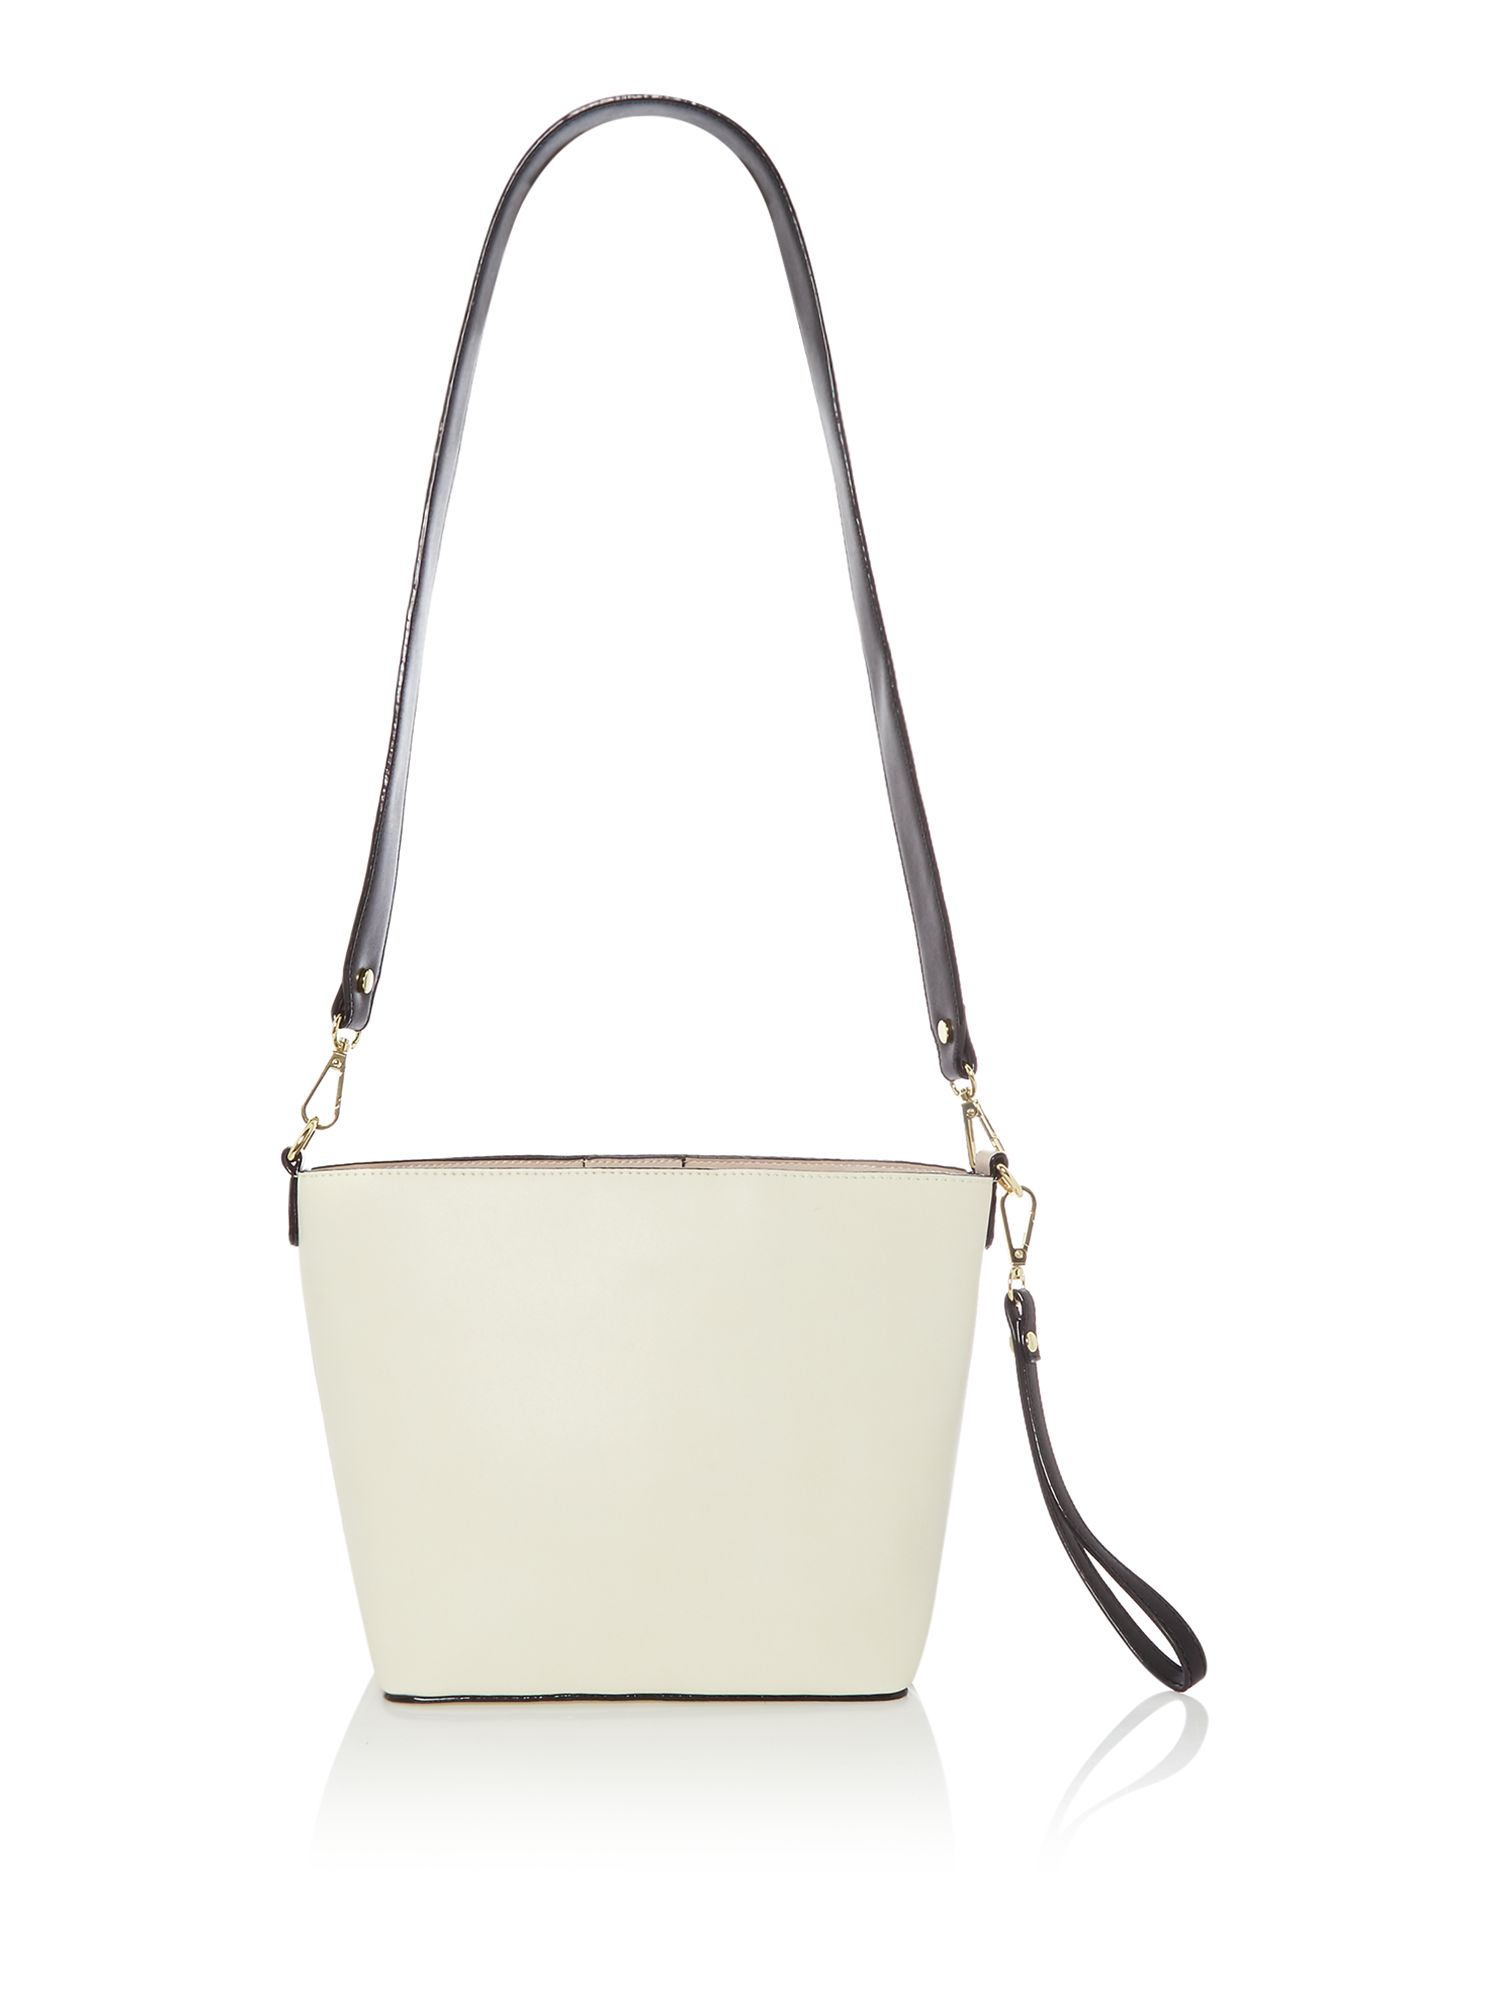 Therapy Campbell bucket bag, Multi-Coloured